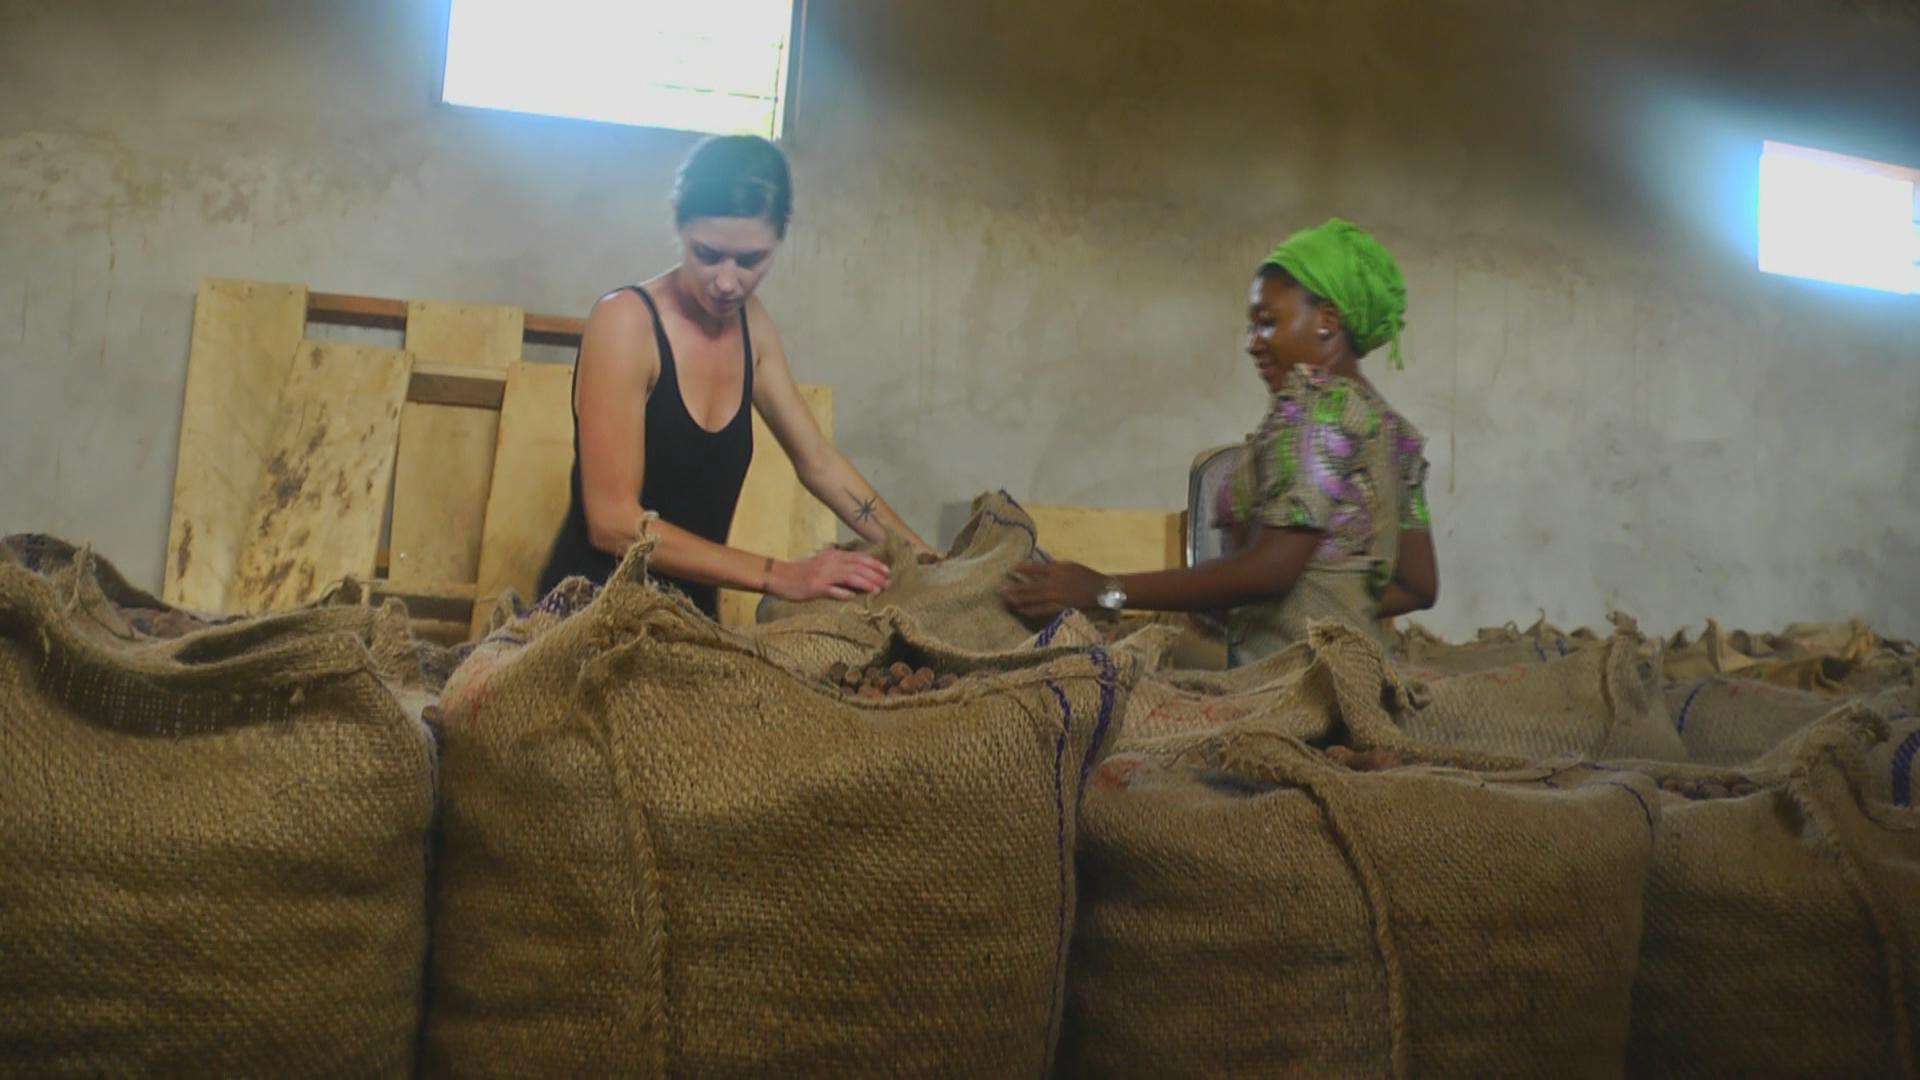 Danielle and Fatima Zubair - project Manager of Just Shea, Ghanain looking at the sacks full of shea nuts. Both women have dedicated their lives towards helping the women of Ghana through collecting shea nuts.